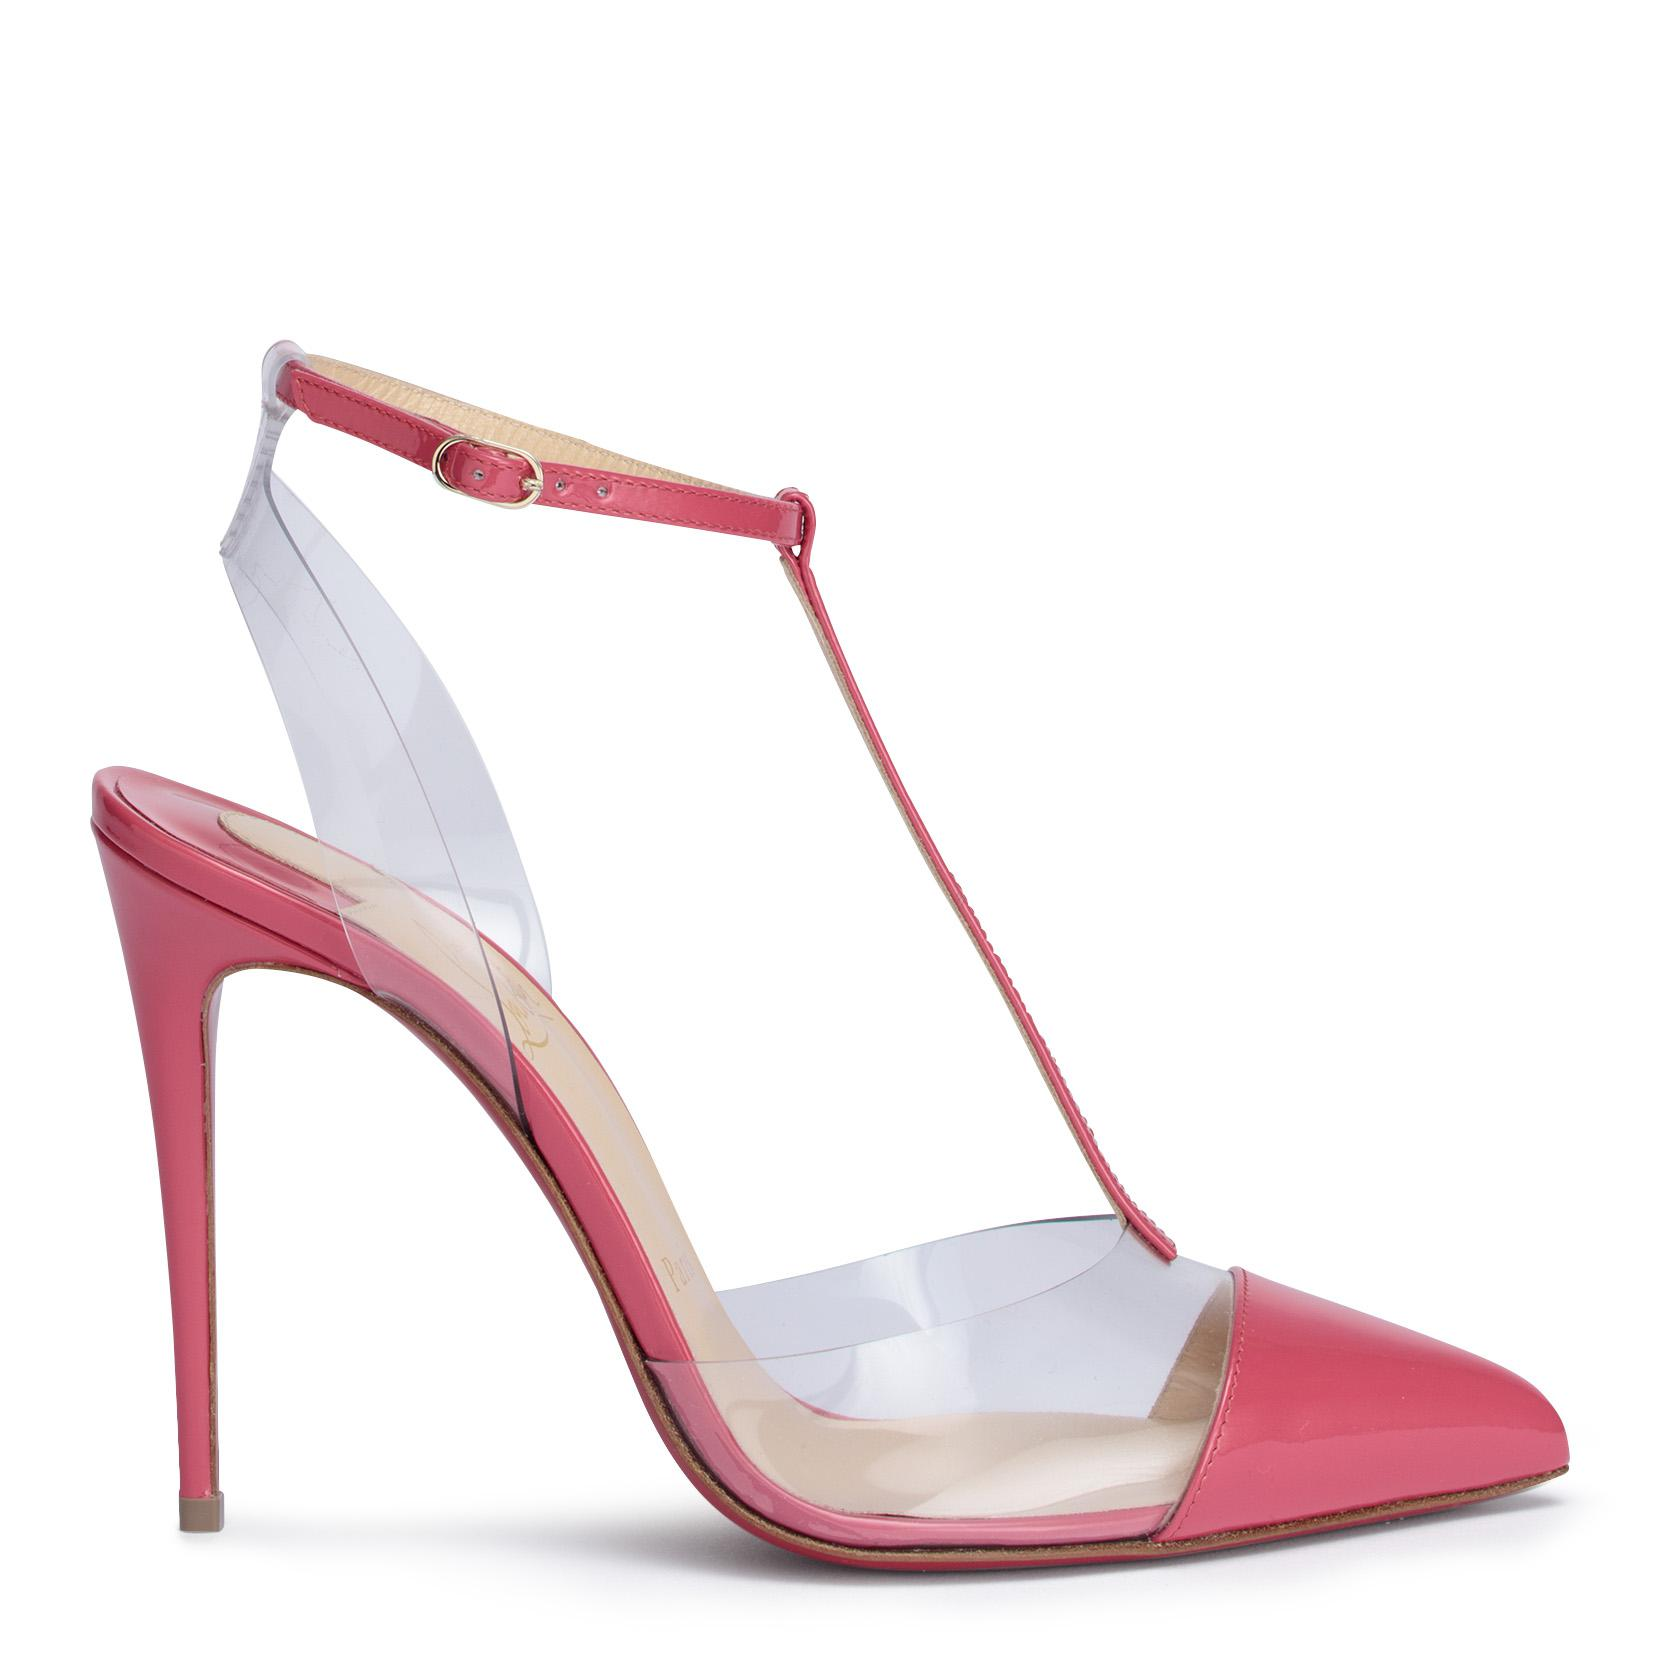 Nosy 100 patent pink pumps Christian Louboutin 2olzcXQnE